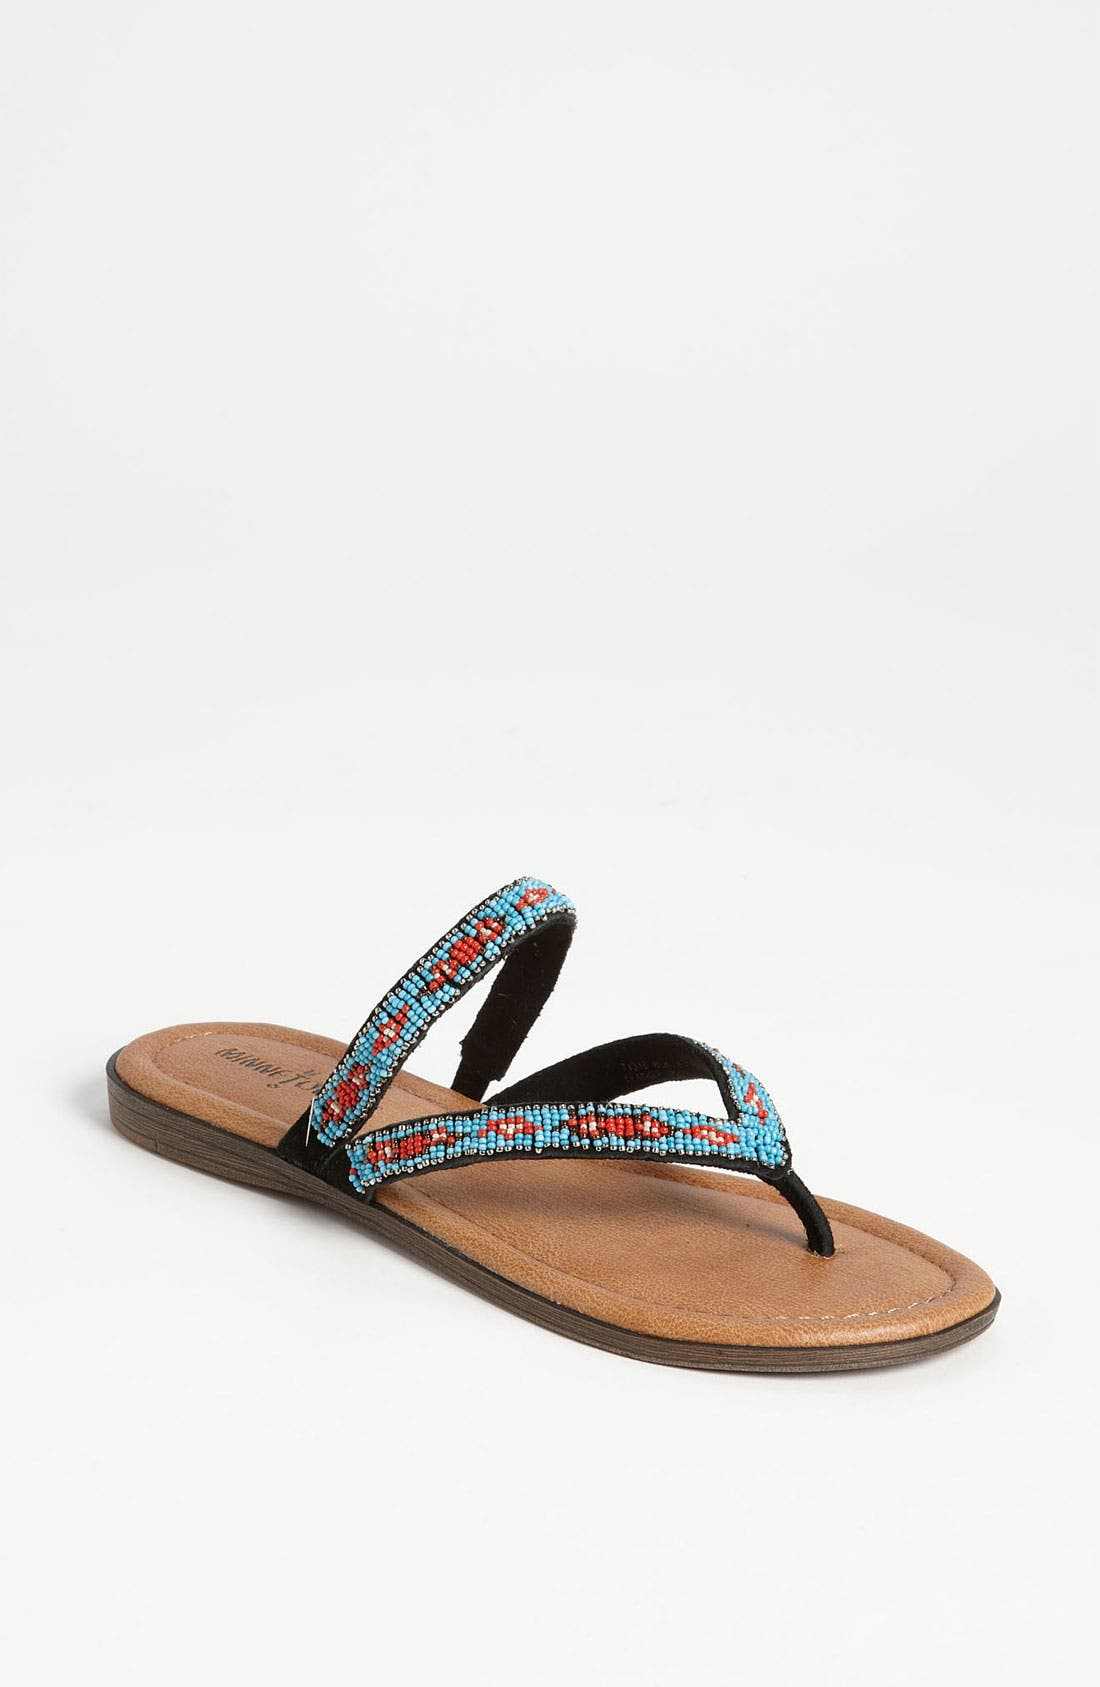 Alternate Image 1 Selected - Minnetonka 'Bermuda' Sandal